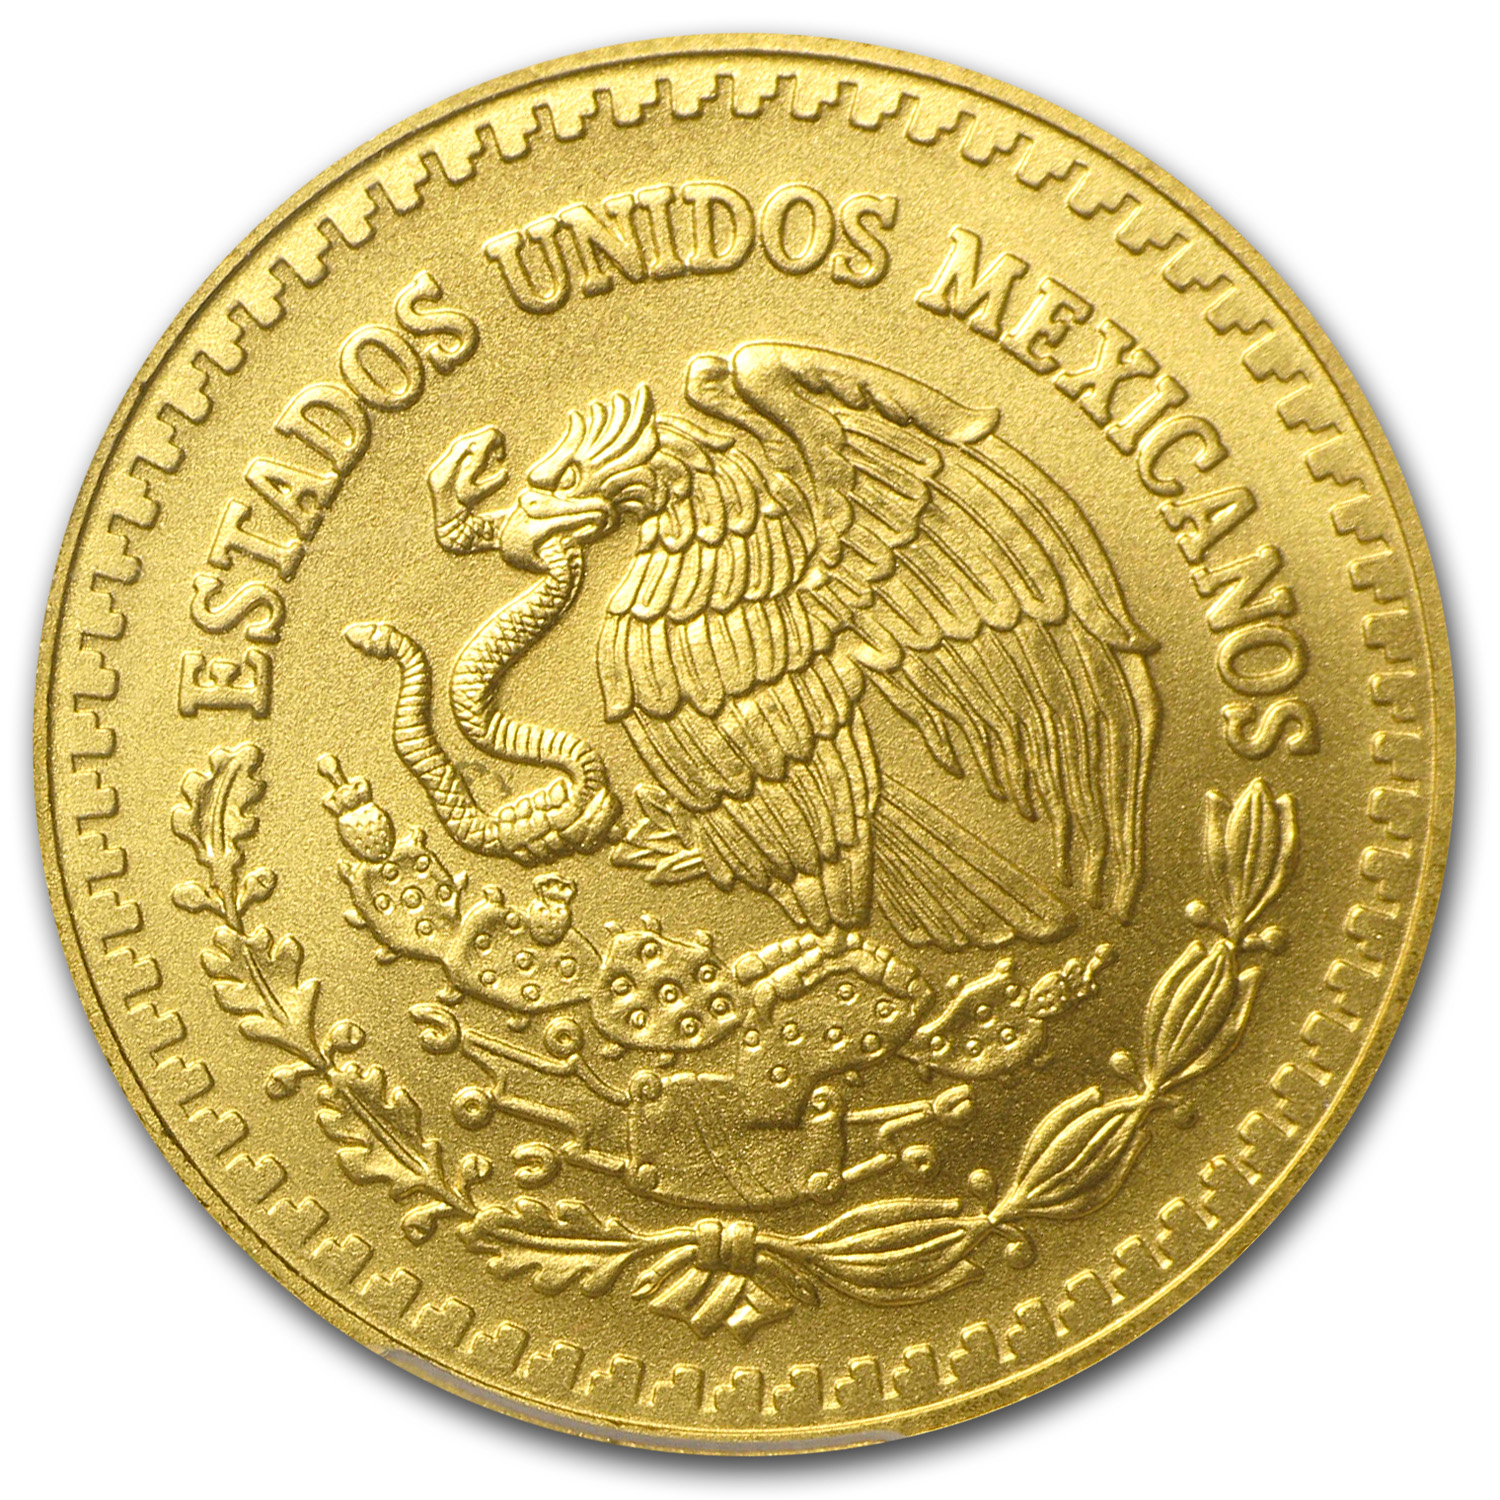 2014 1/2 oz Gold Mexican Libertad MS-69 PCGS